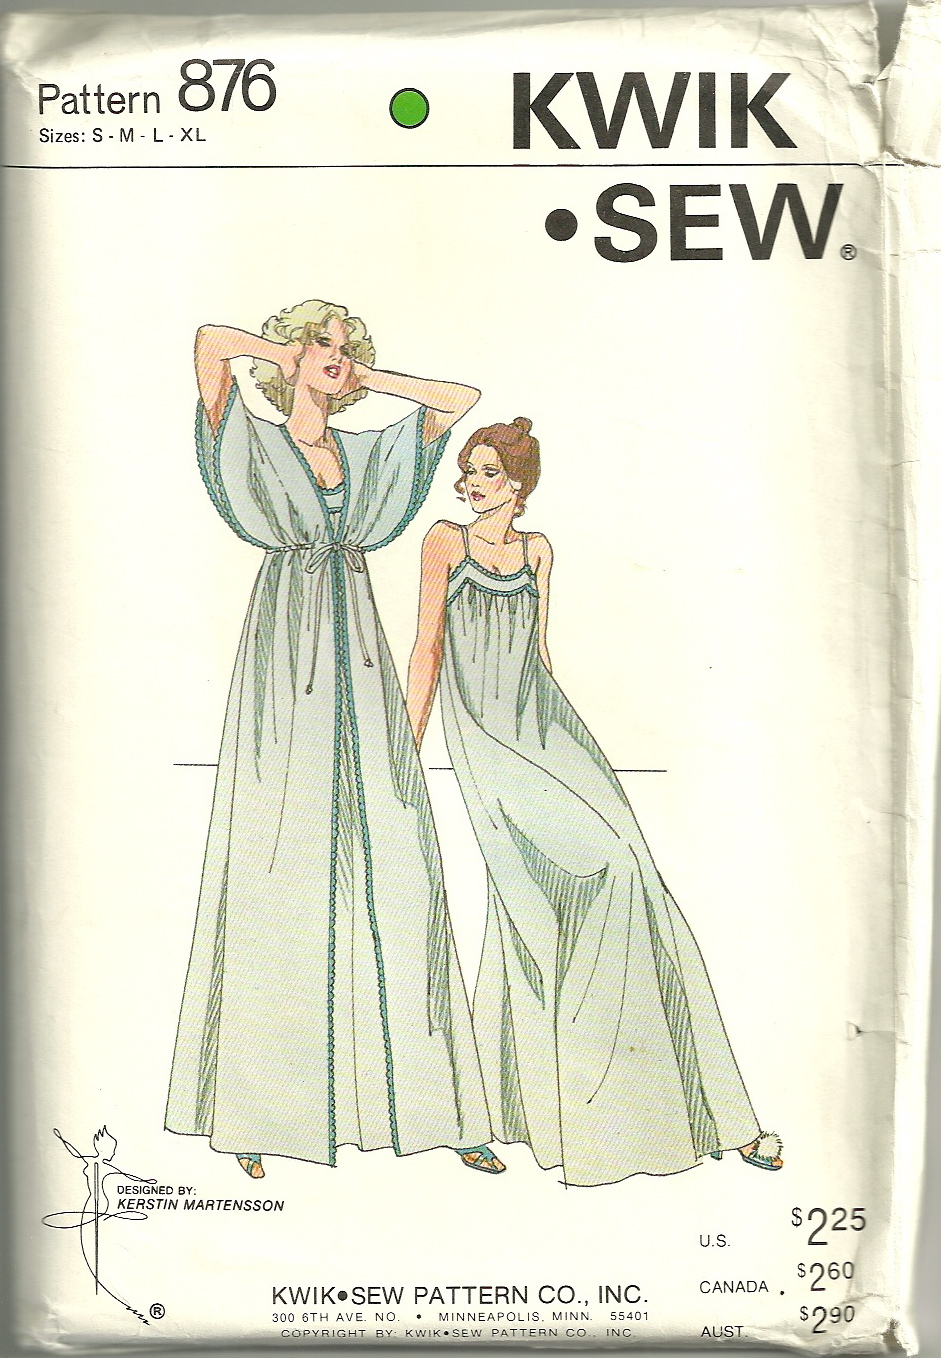 Kwik sew 876 vintage sewing patterns fandom powered by wikia kw 876 jeuxipadfo Gallery